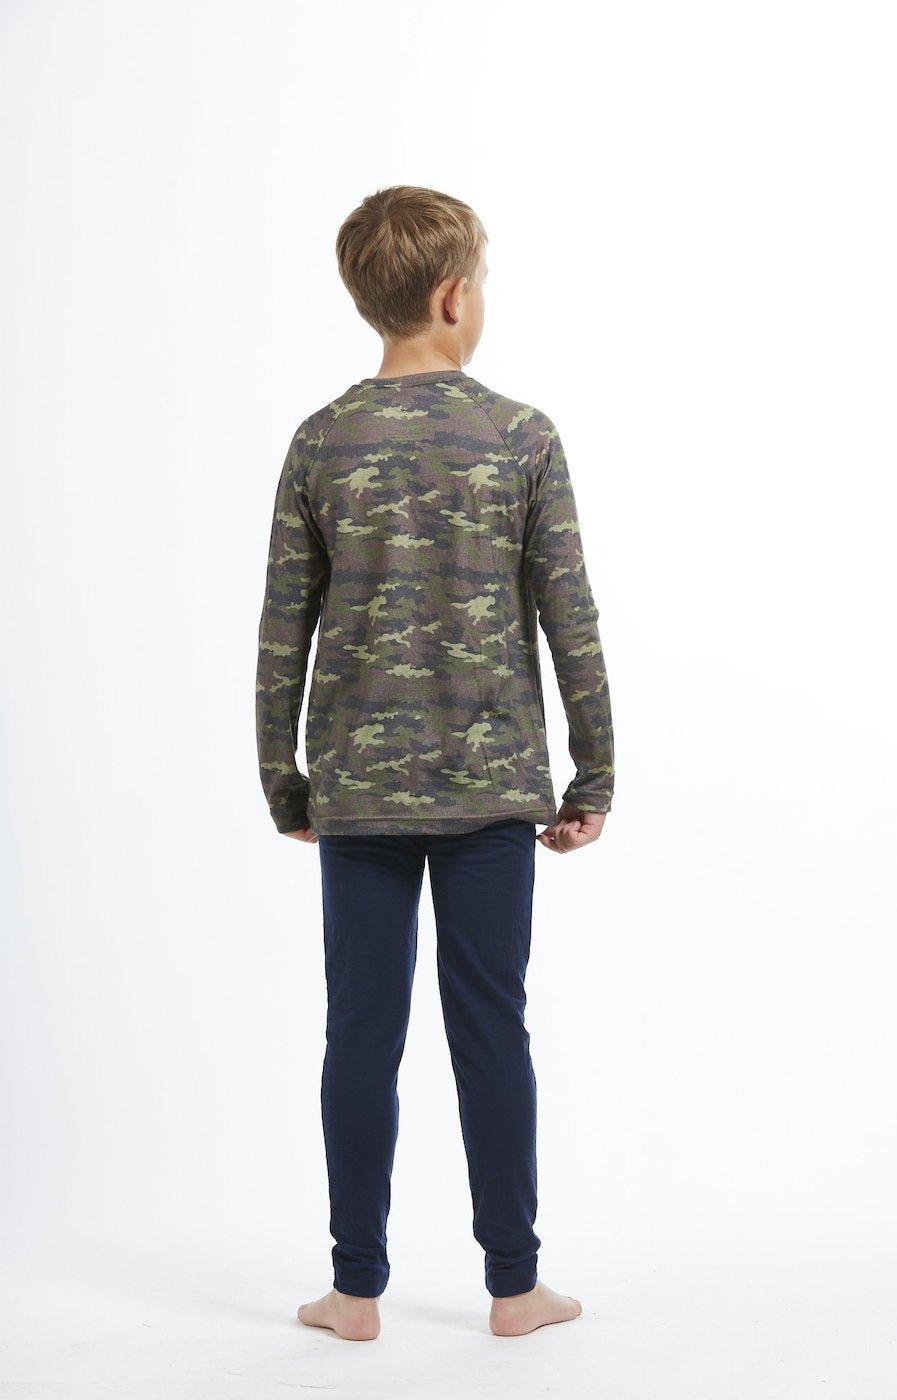 Kids' Merino Wool Thermal Base Layer Leggings - Navy